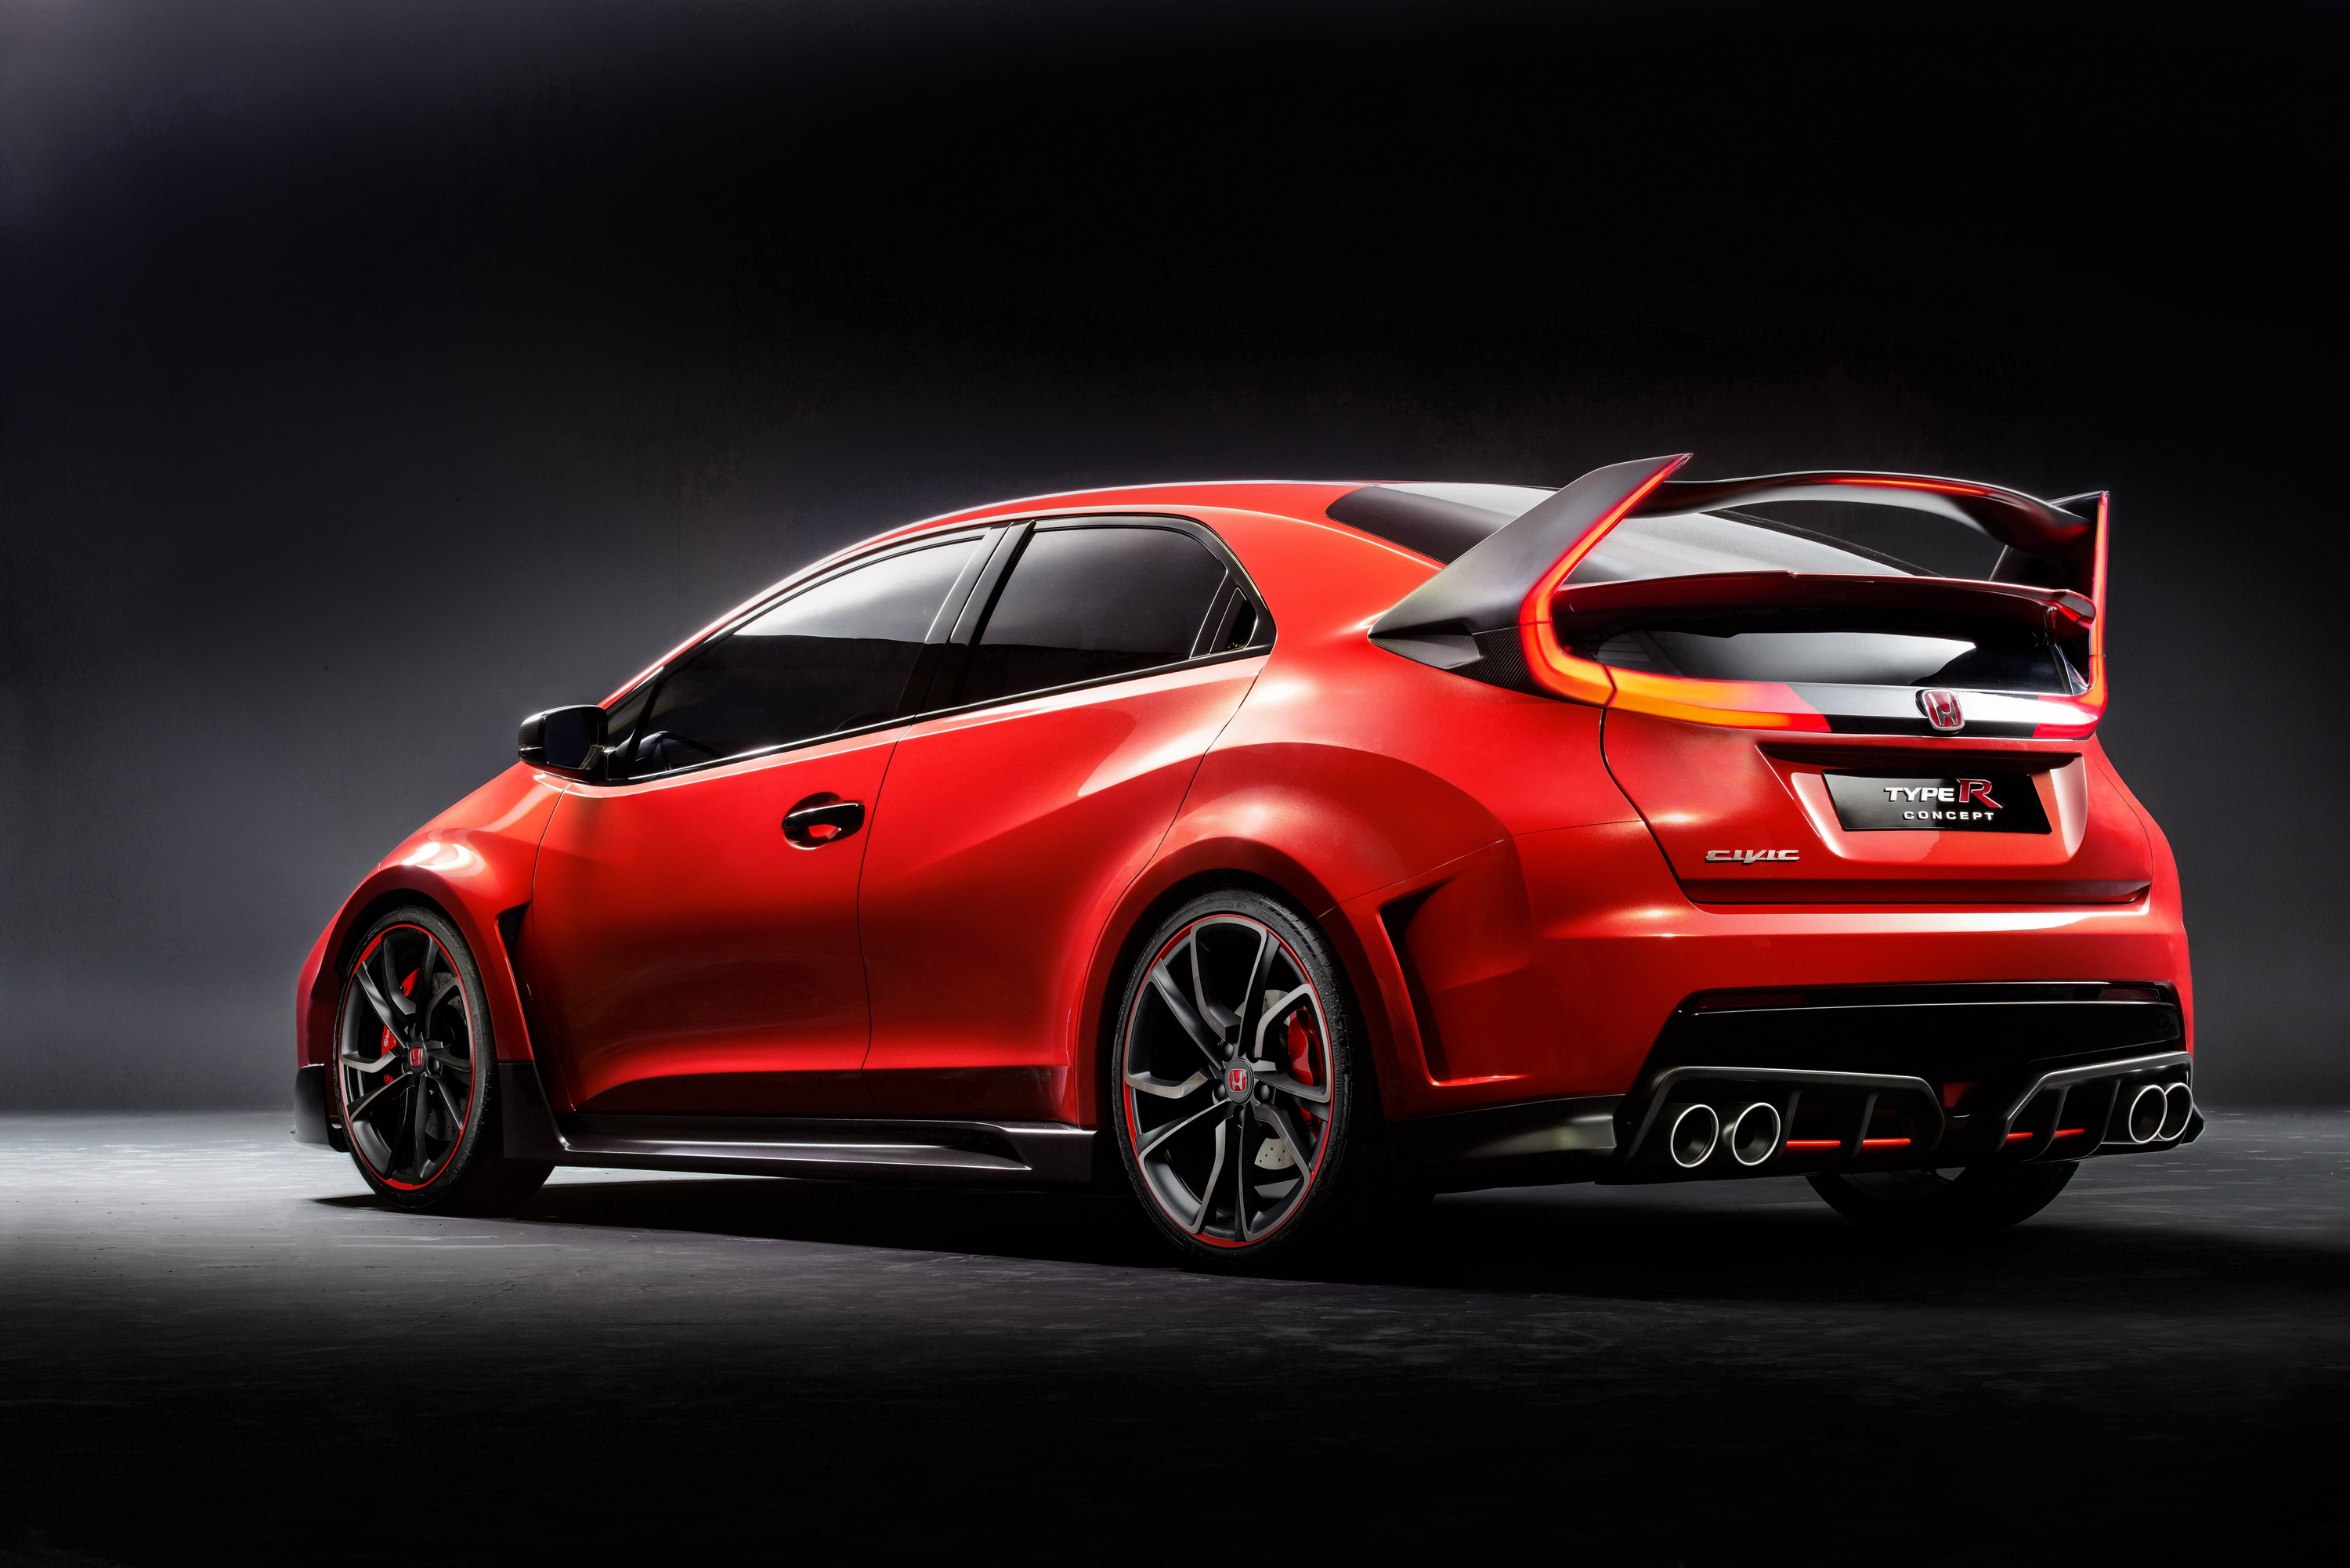 2014 Honda Civic Type R Concept Gallery 544699 | Top Speed